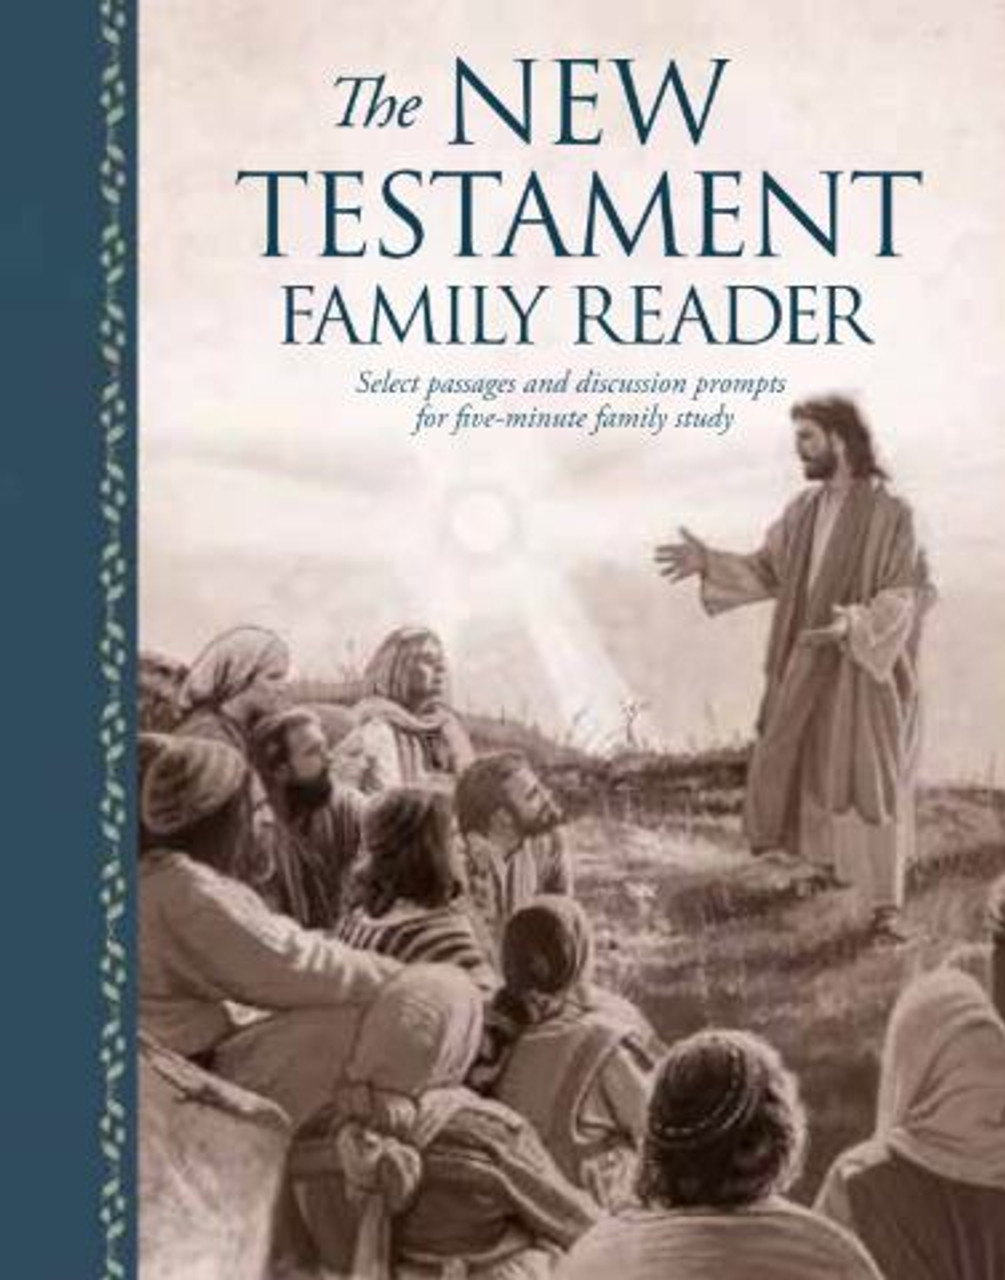 The New Testament Family Reader: Select Passages and Discussion Prompts for Five-Minute Family Study (Hardcover) *